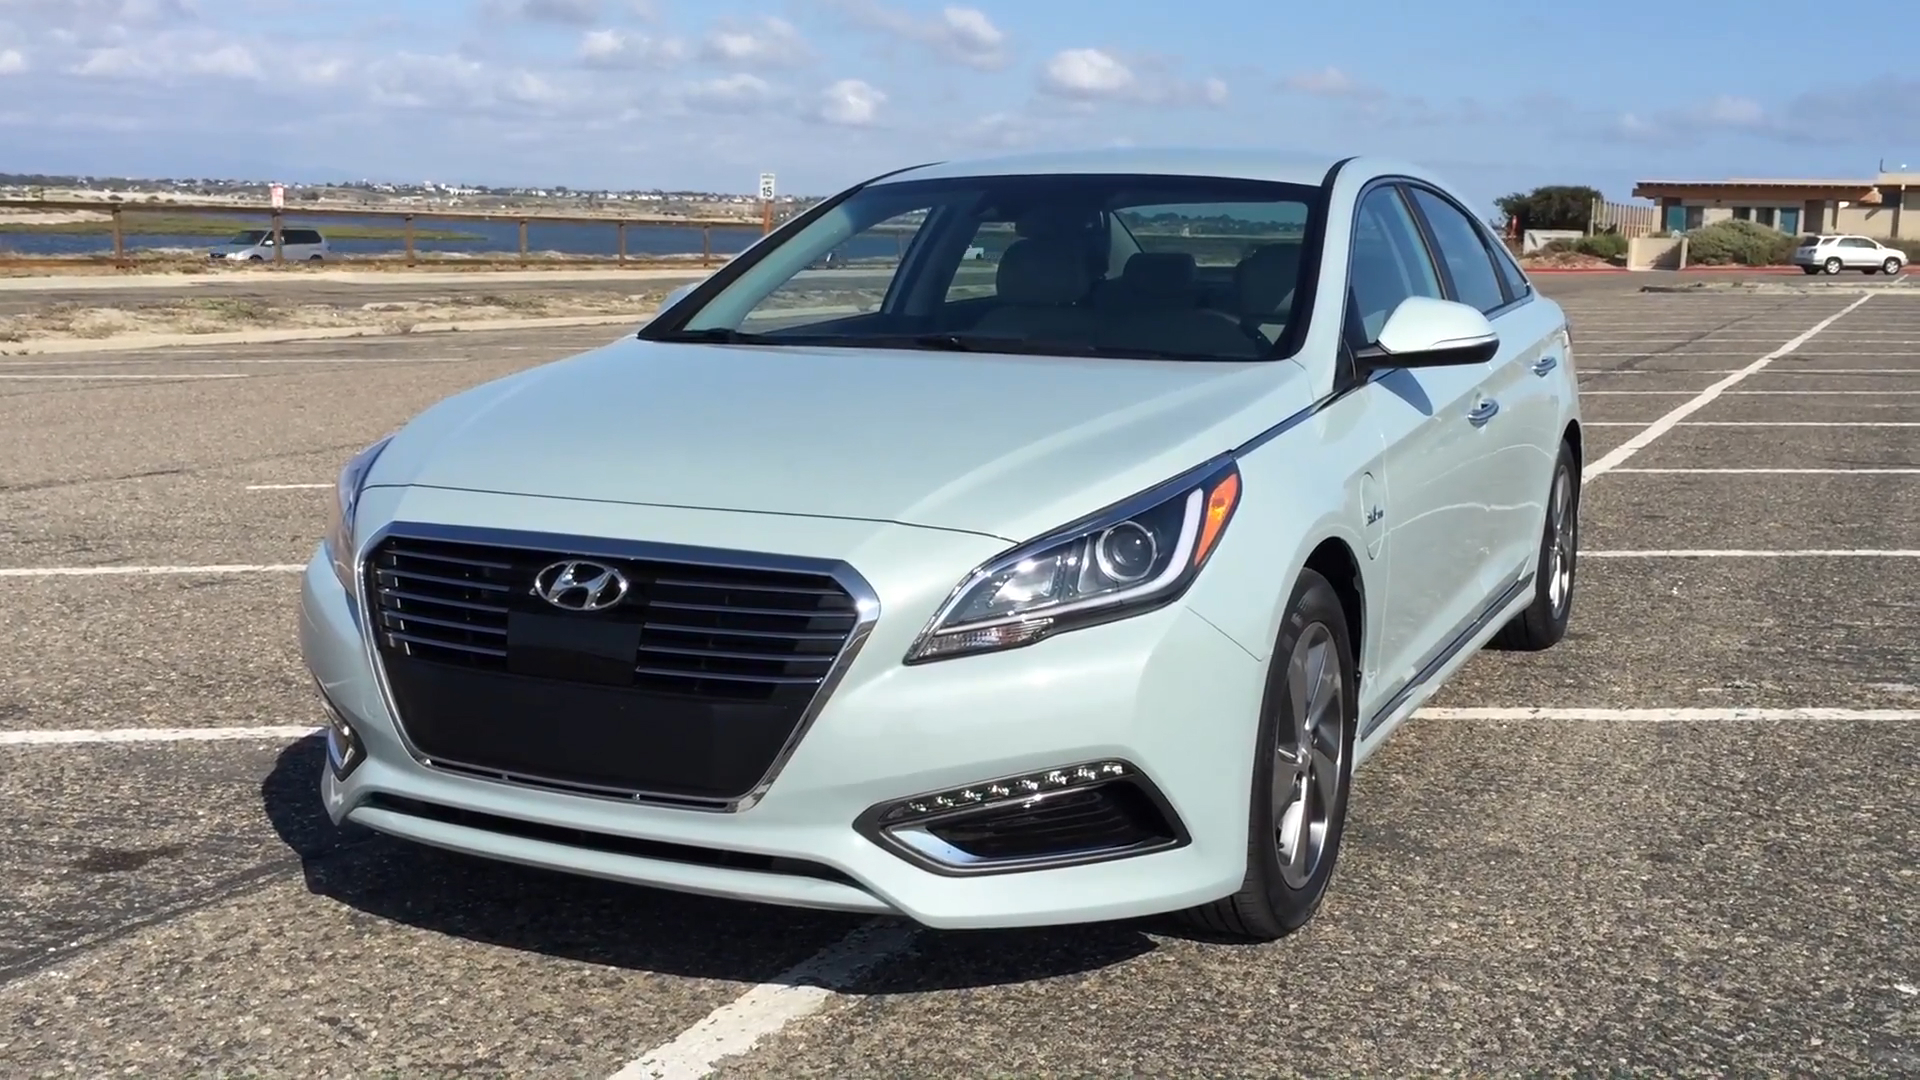 2016 Hyundai Sonata Plug-In Hybrid | First Impression